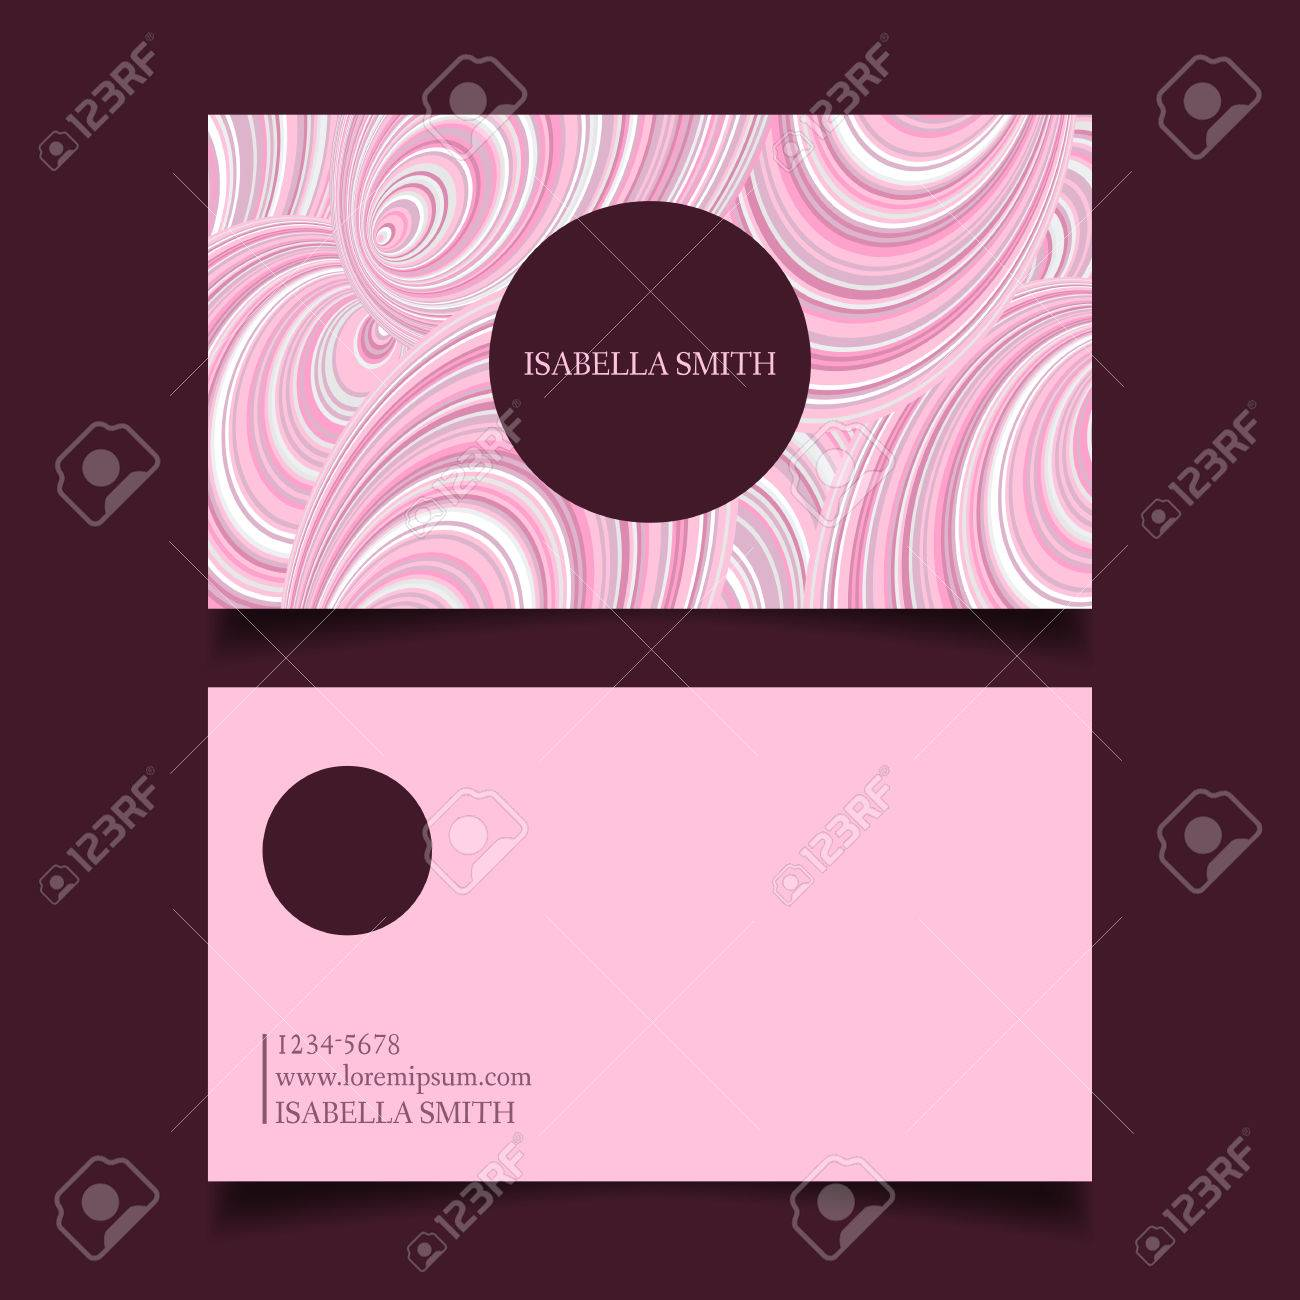 Business card template editable gently pink color palette design business card template editable gently pink color palette design vector stock vector fbccfo